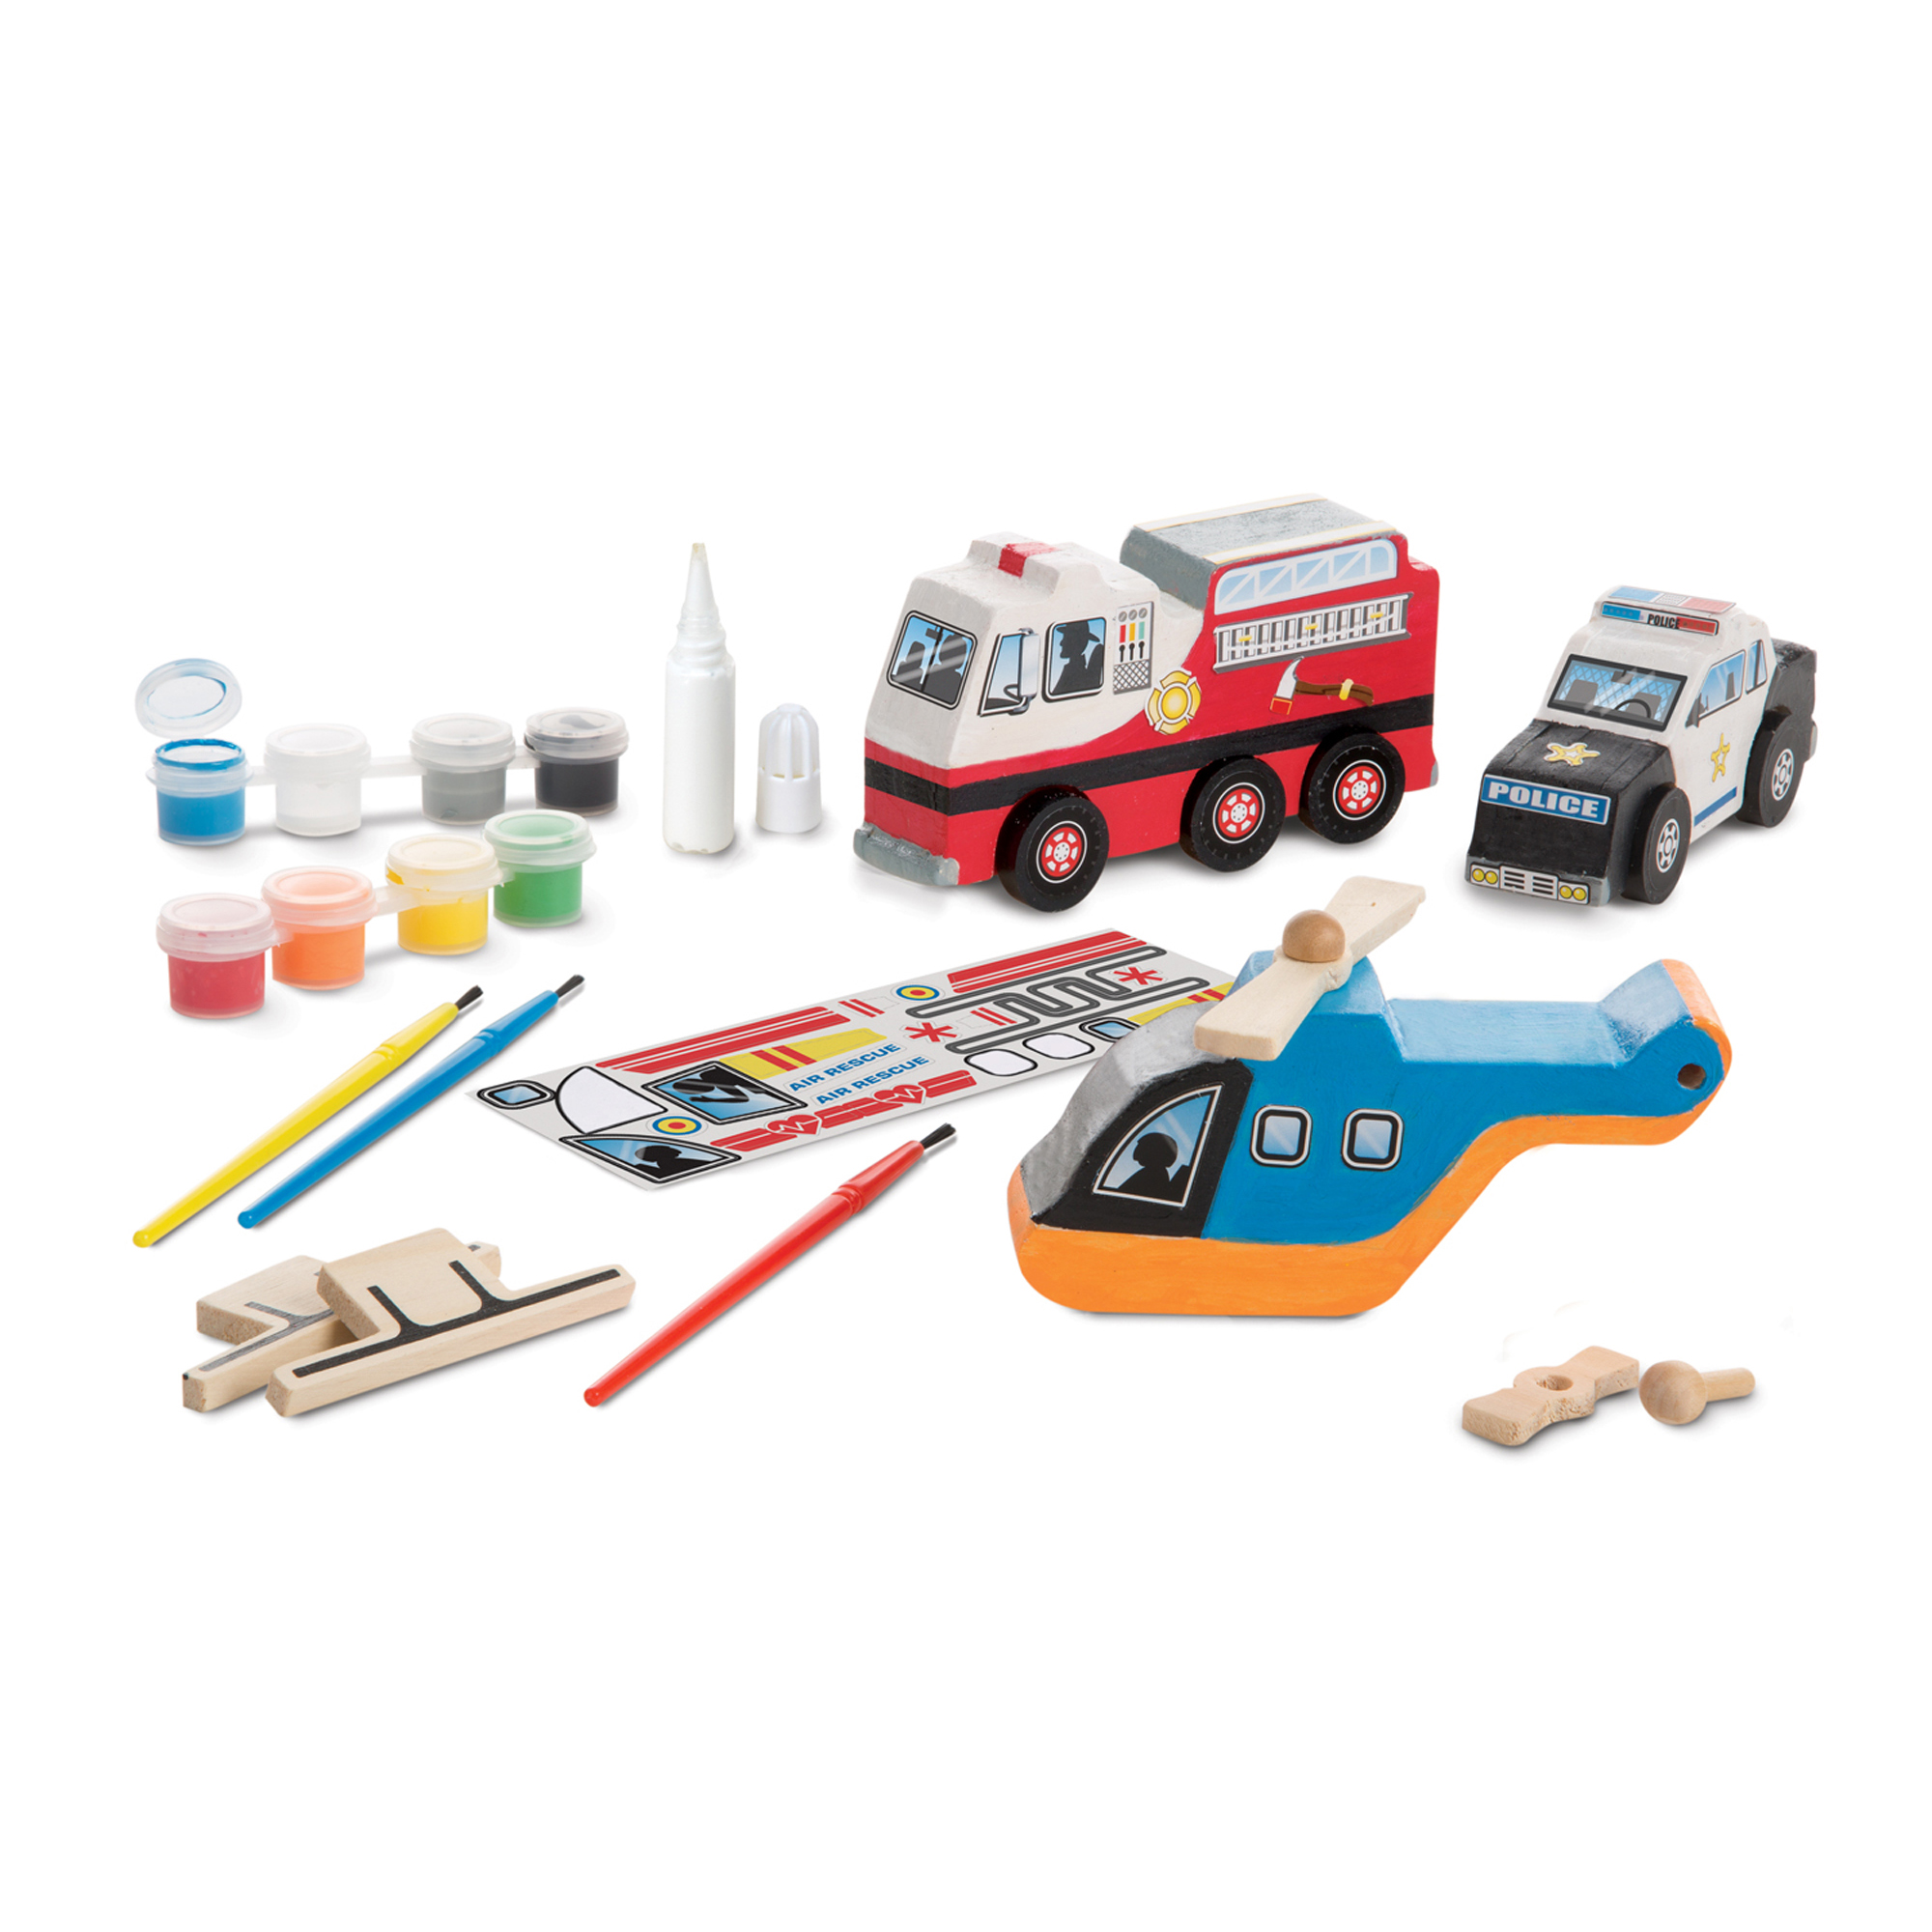 Melissa & Doug Created by Me! Rescue Vehicles Wooden Craft Kit - Decorate-Your-Own Police Car, Fire Truck, Helicopter